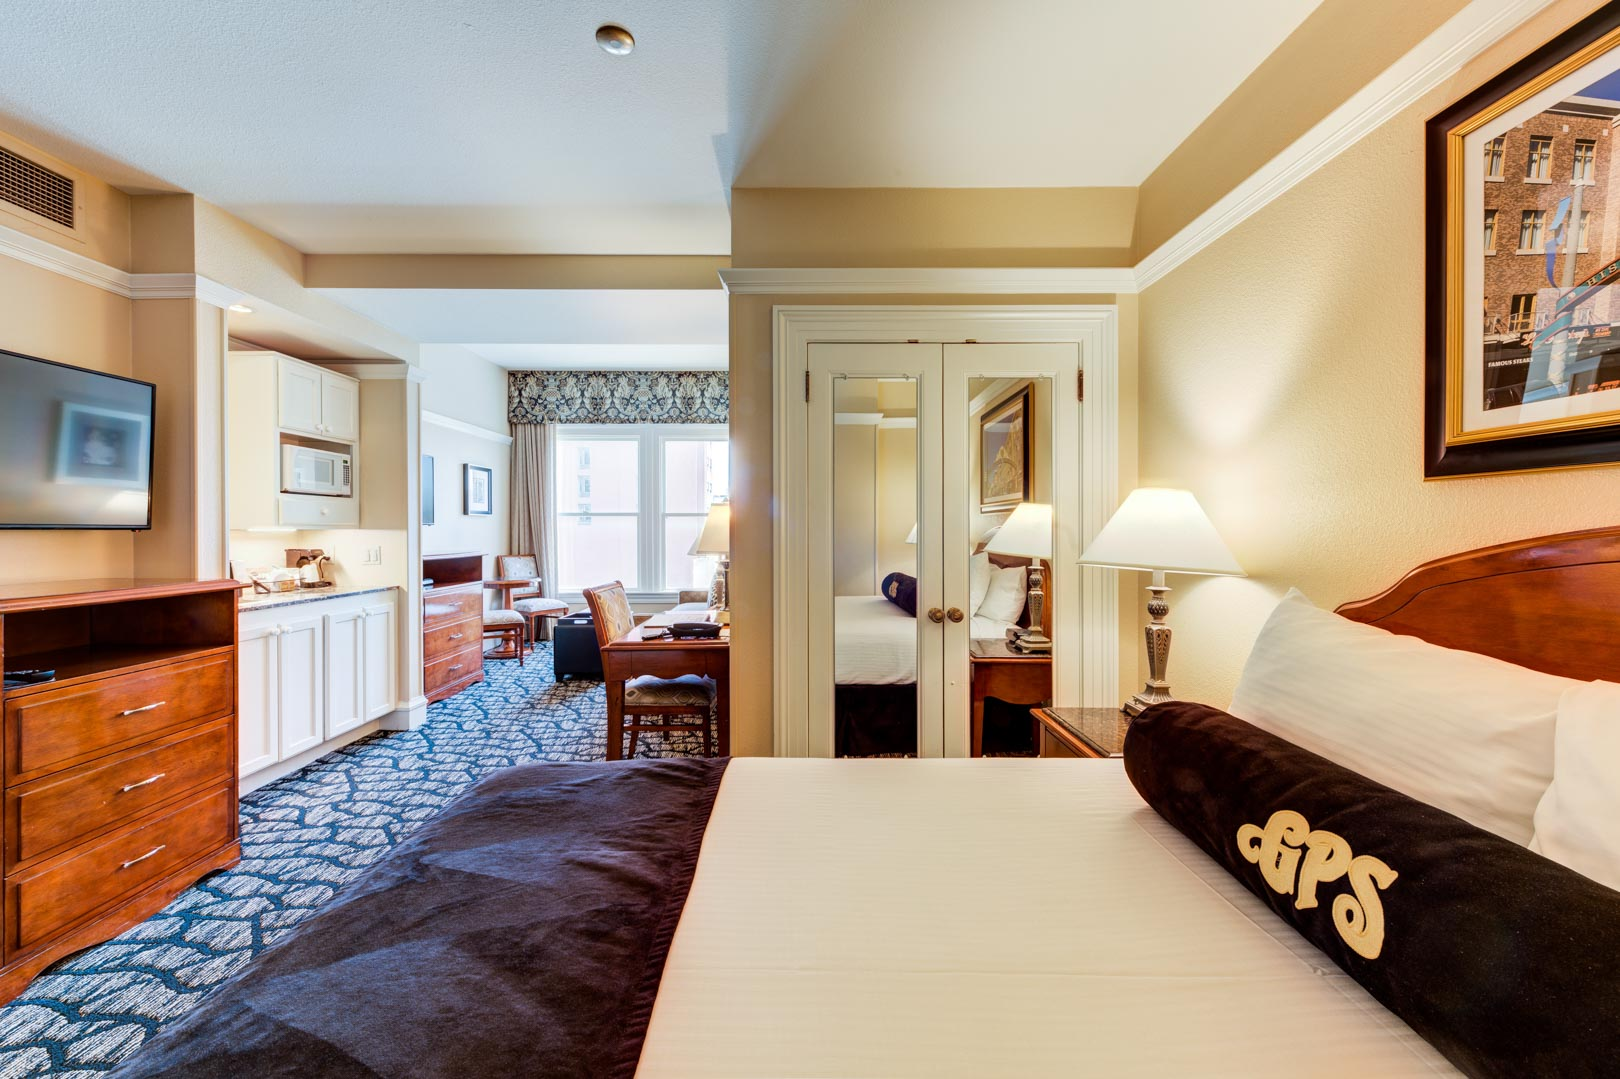 A charming bedroom at VRI's Gaslamp Plaza Suites in San Diego, California.